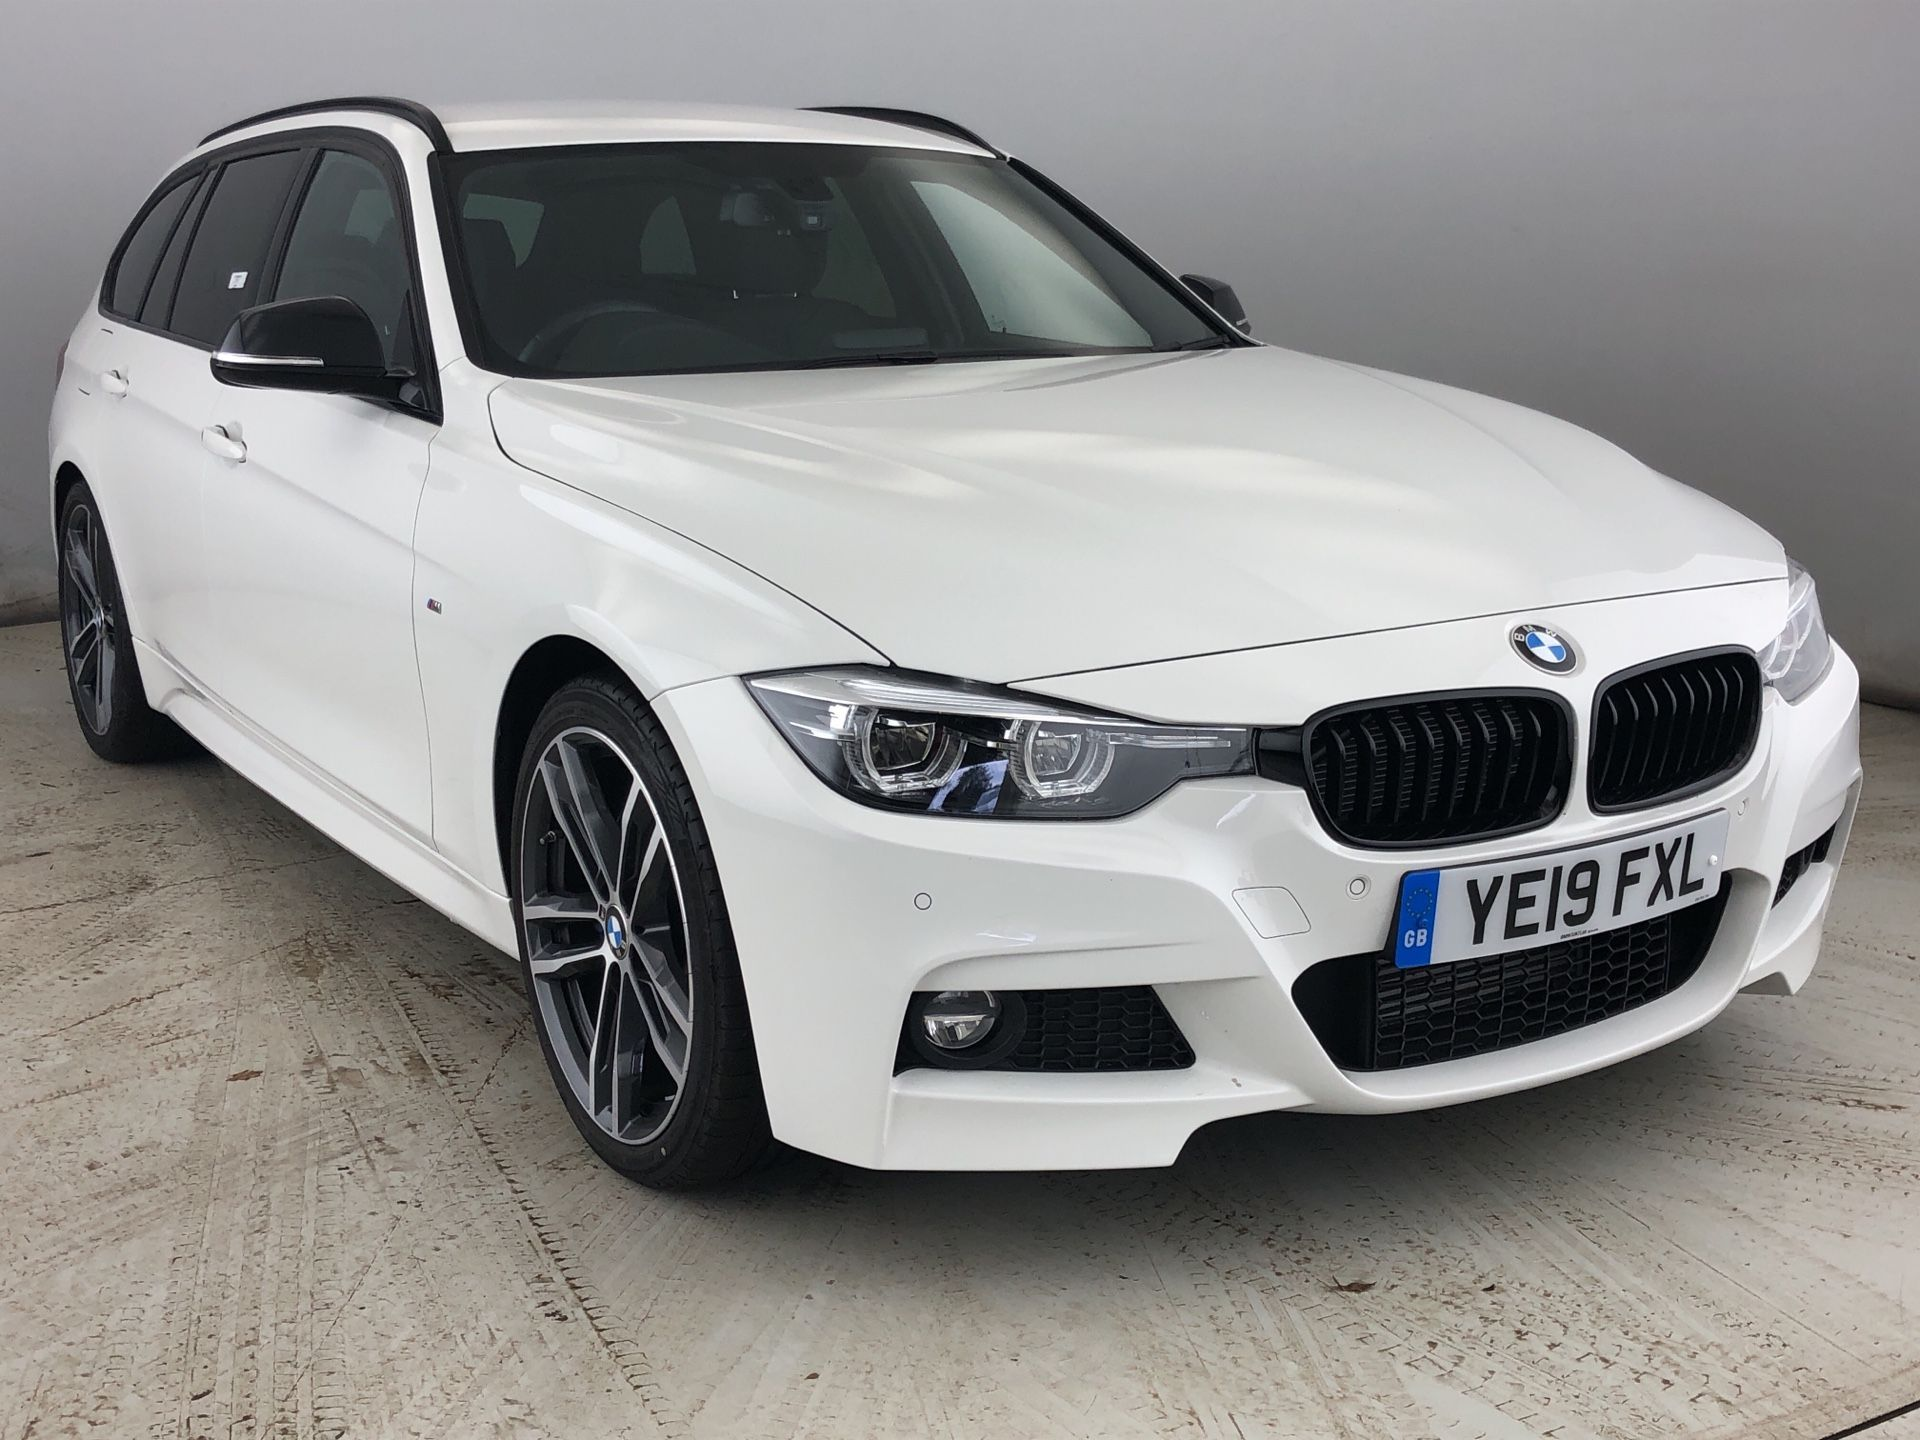 Image 1 - BMW 320d M Sport Shadow Edition Touring (YE19FXL)